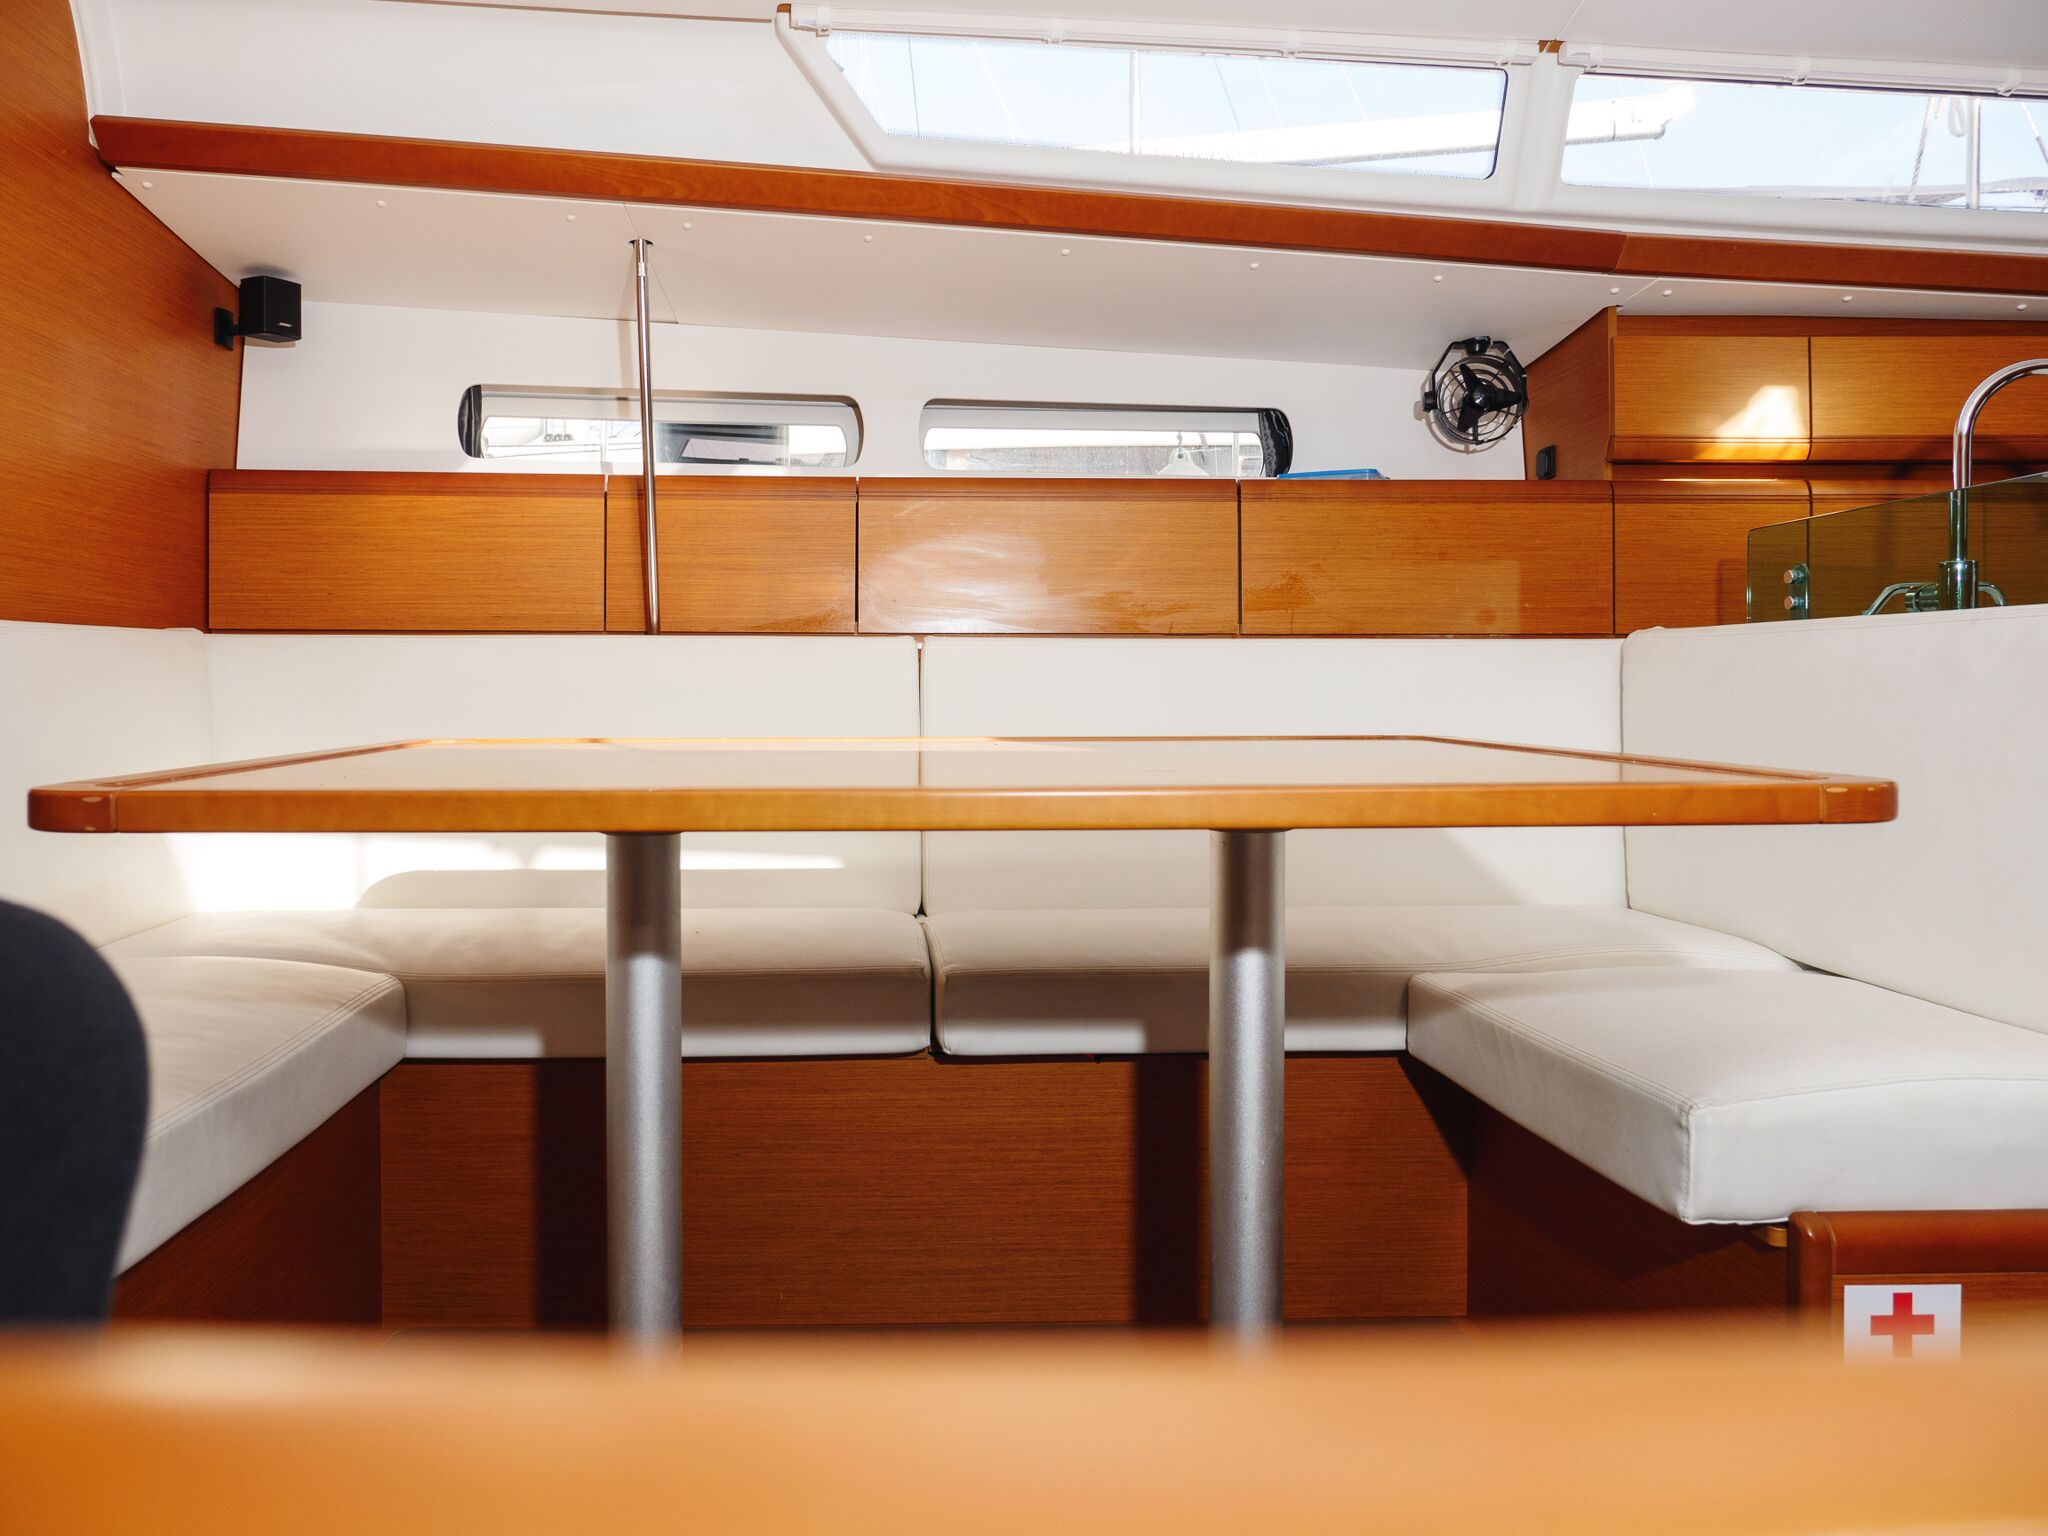 Sun Odyssey 449 (Odessa) Interior - saloon (photo taken 2019) - 3